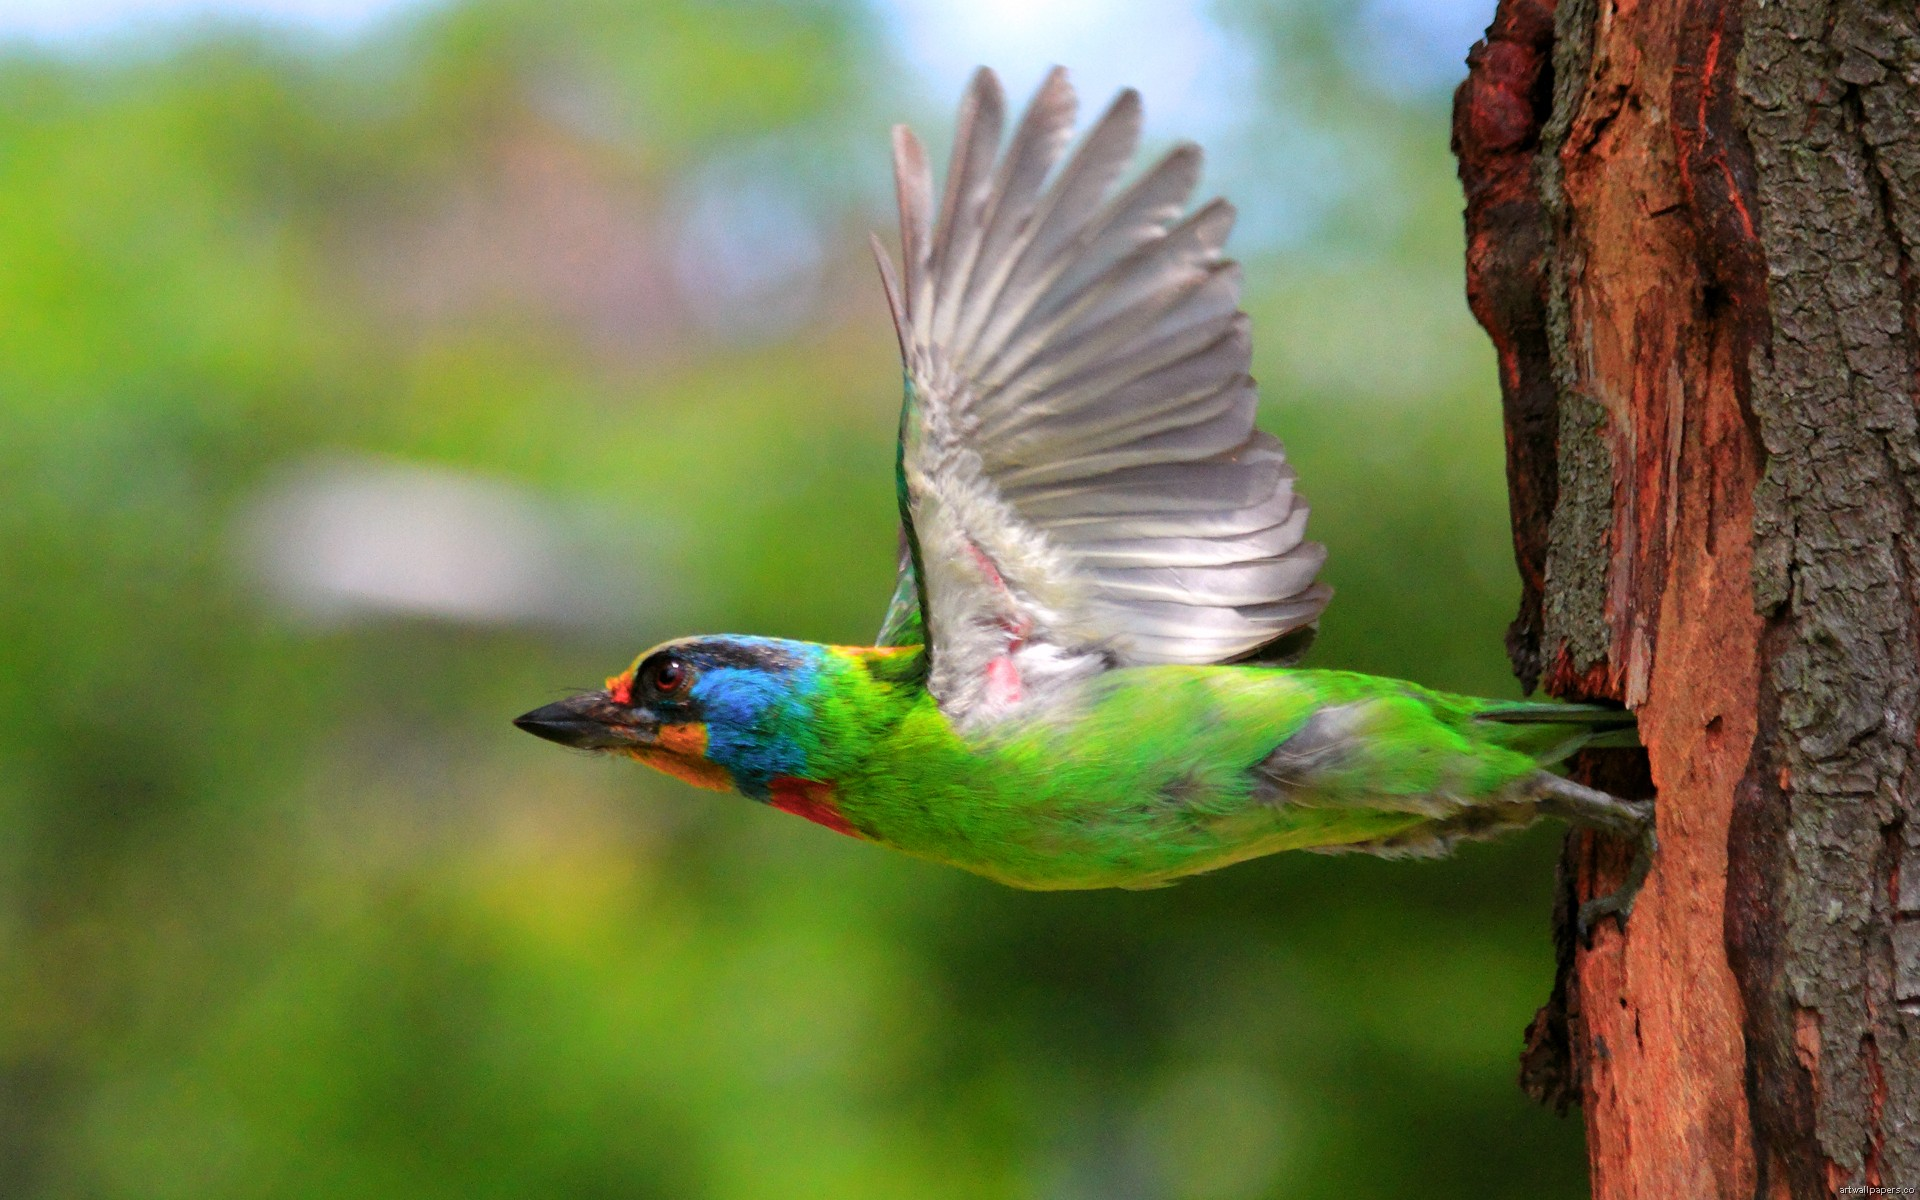 Page 3 of nature hd wallpapers and nature desktop backgrounds - Animal and bird hd wallpaper ...